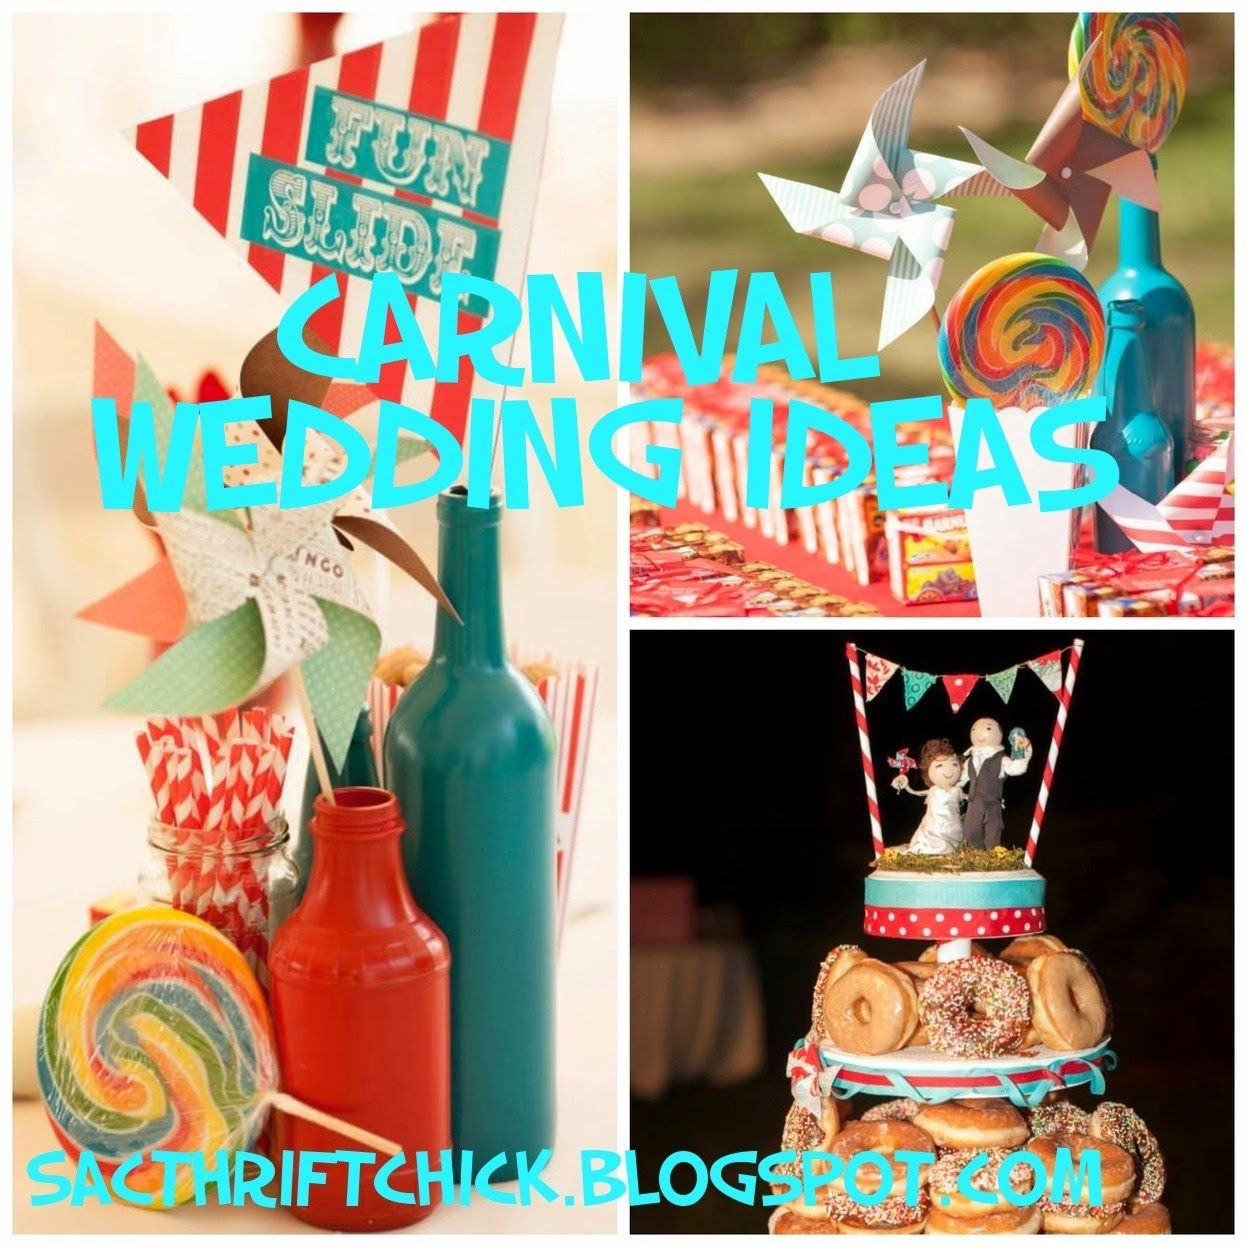 Great DIY Carnival Wedding Ideas Pinwheels Pennants Games Cotton Candy And